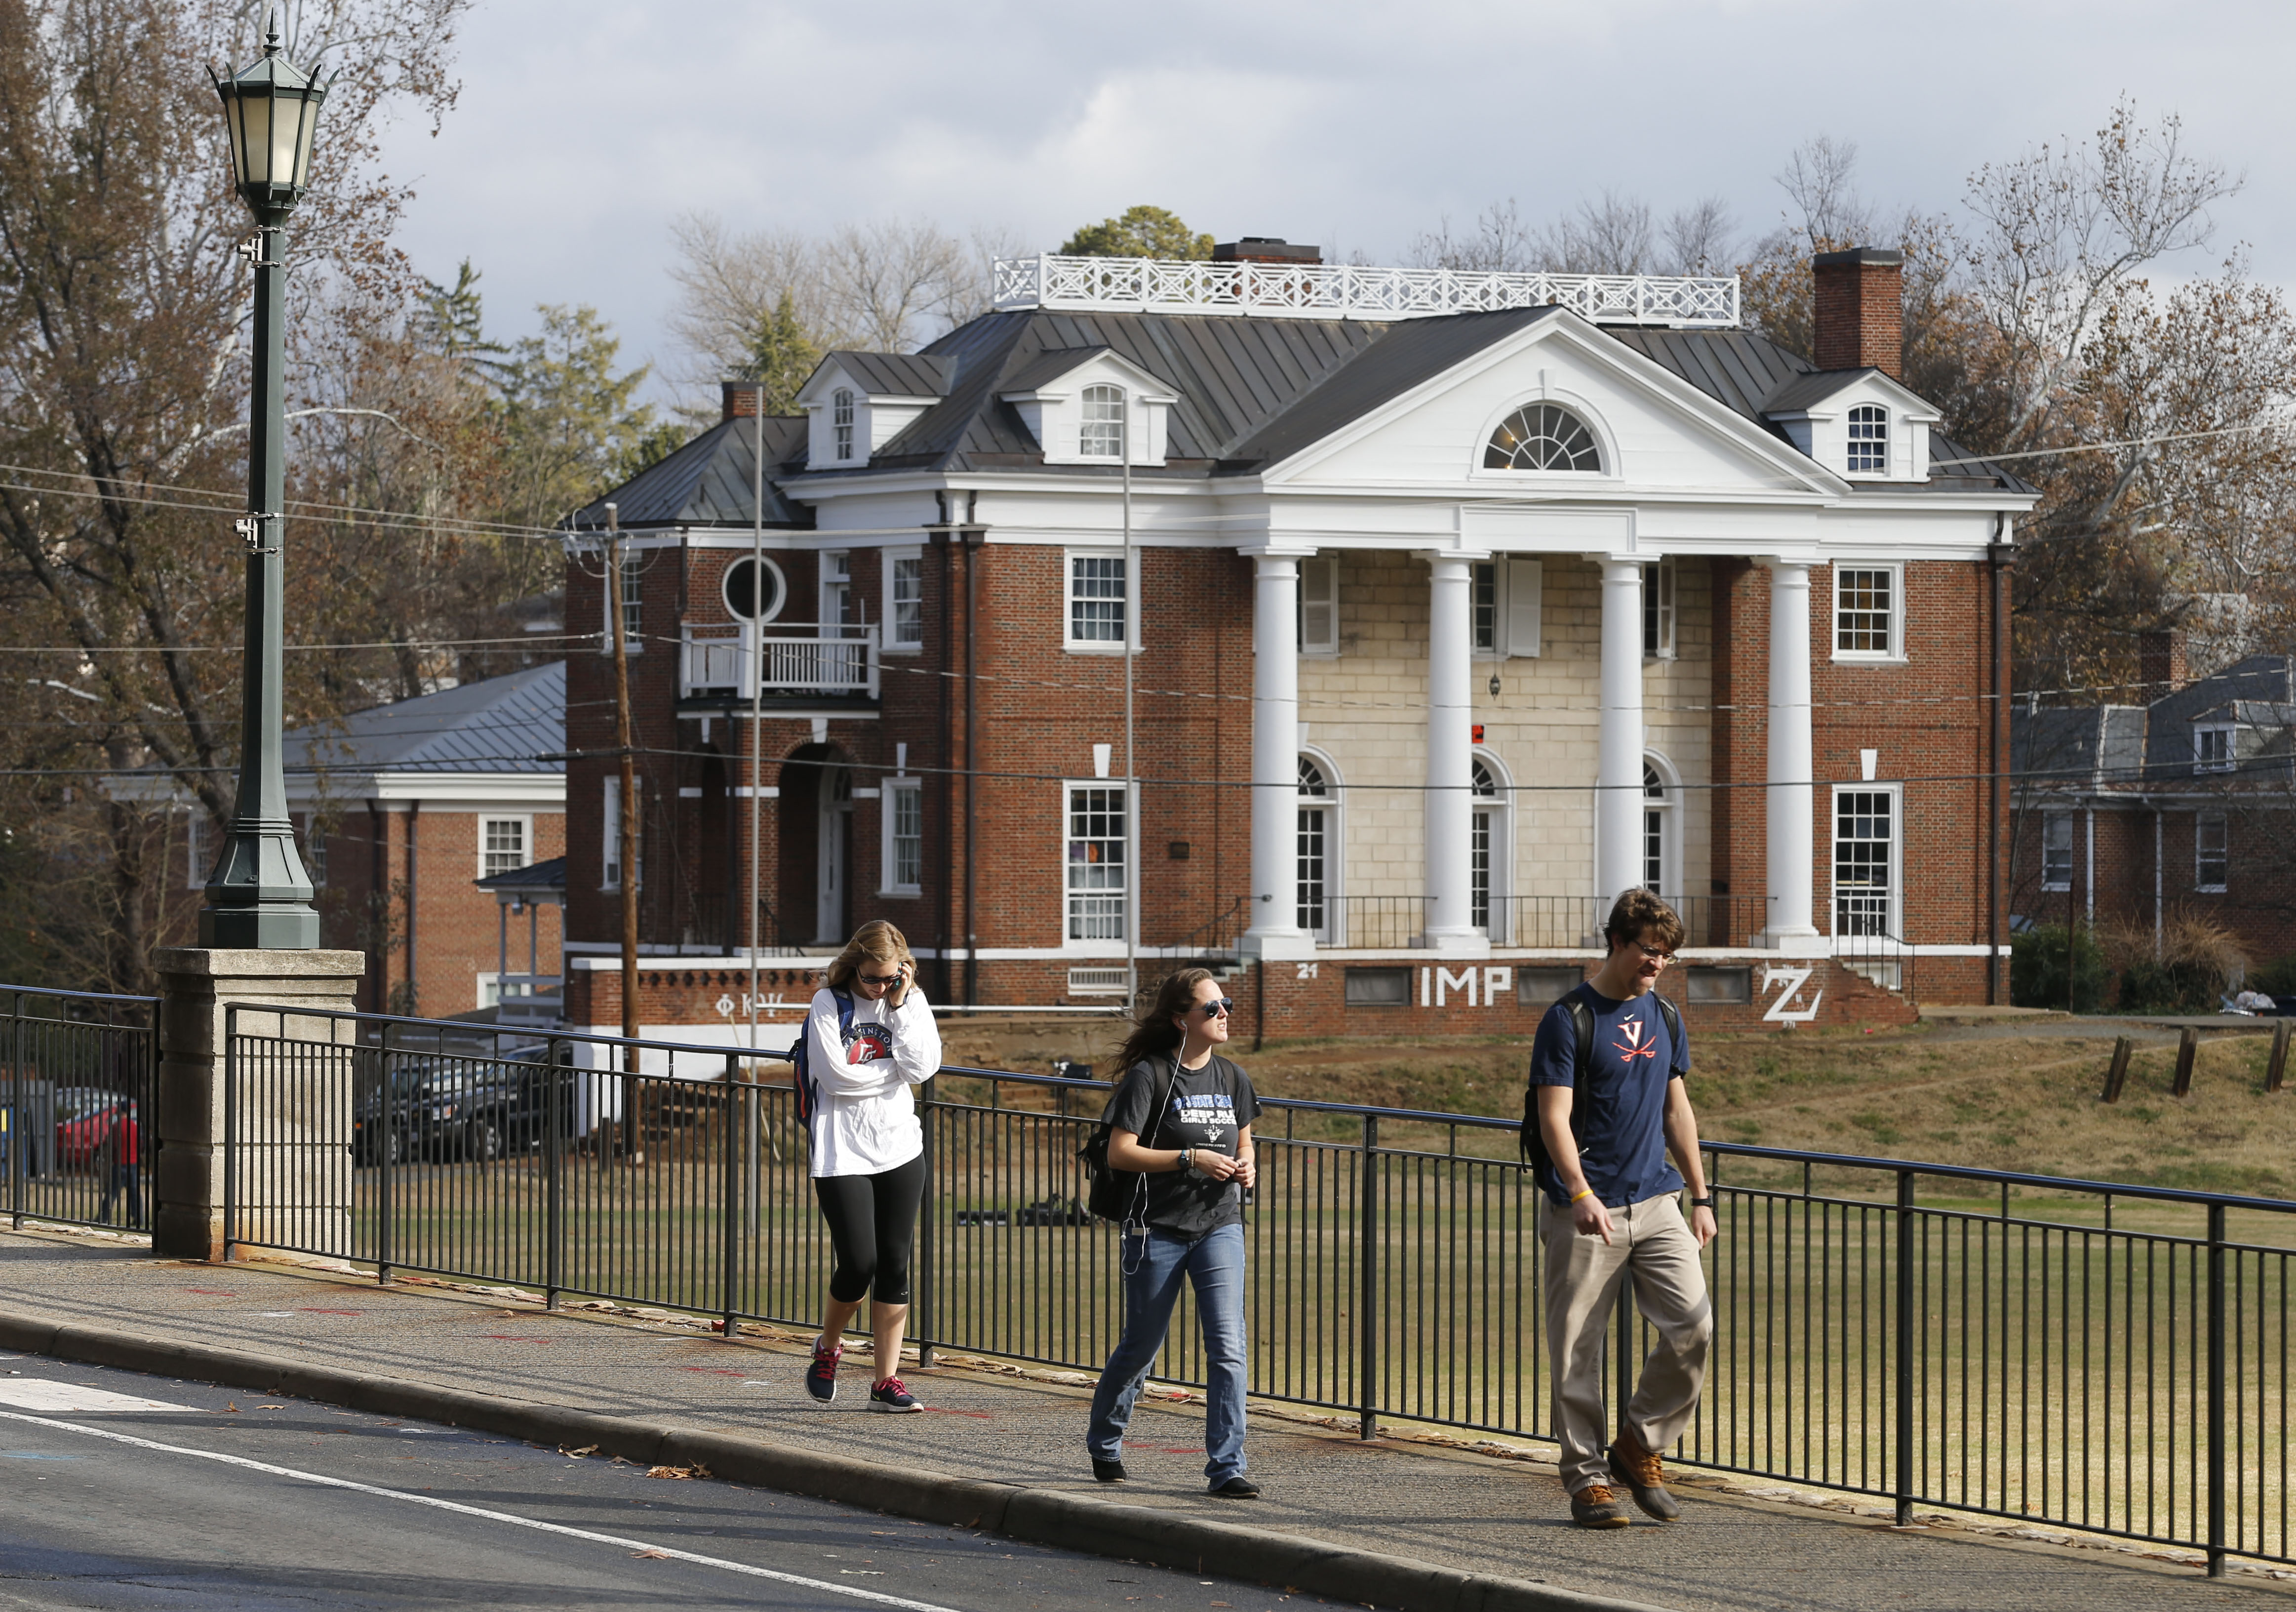 Debunked UVa gang rape may be connected to grand 'catfishing' plan